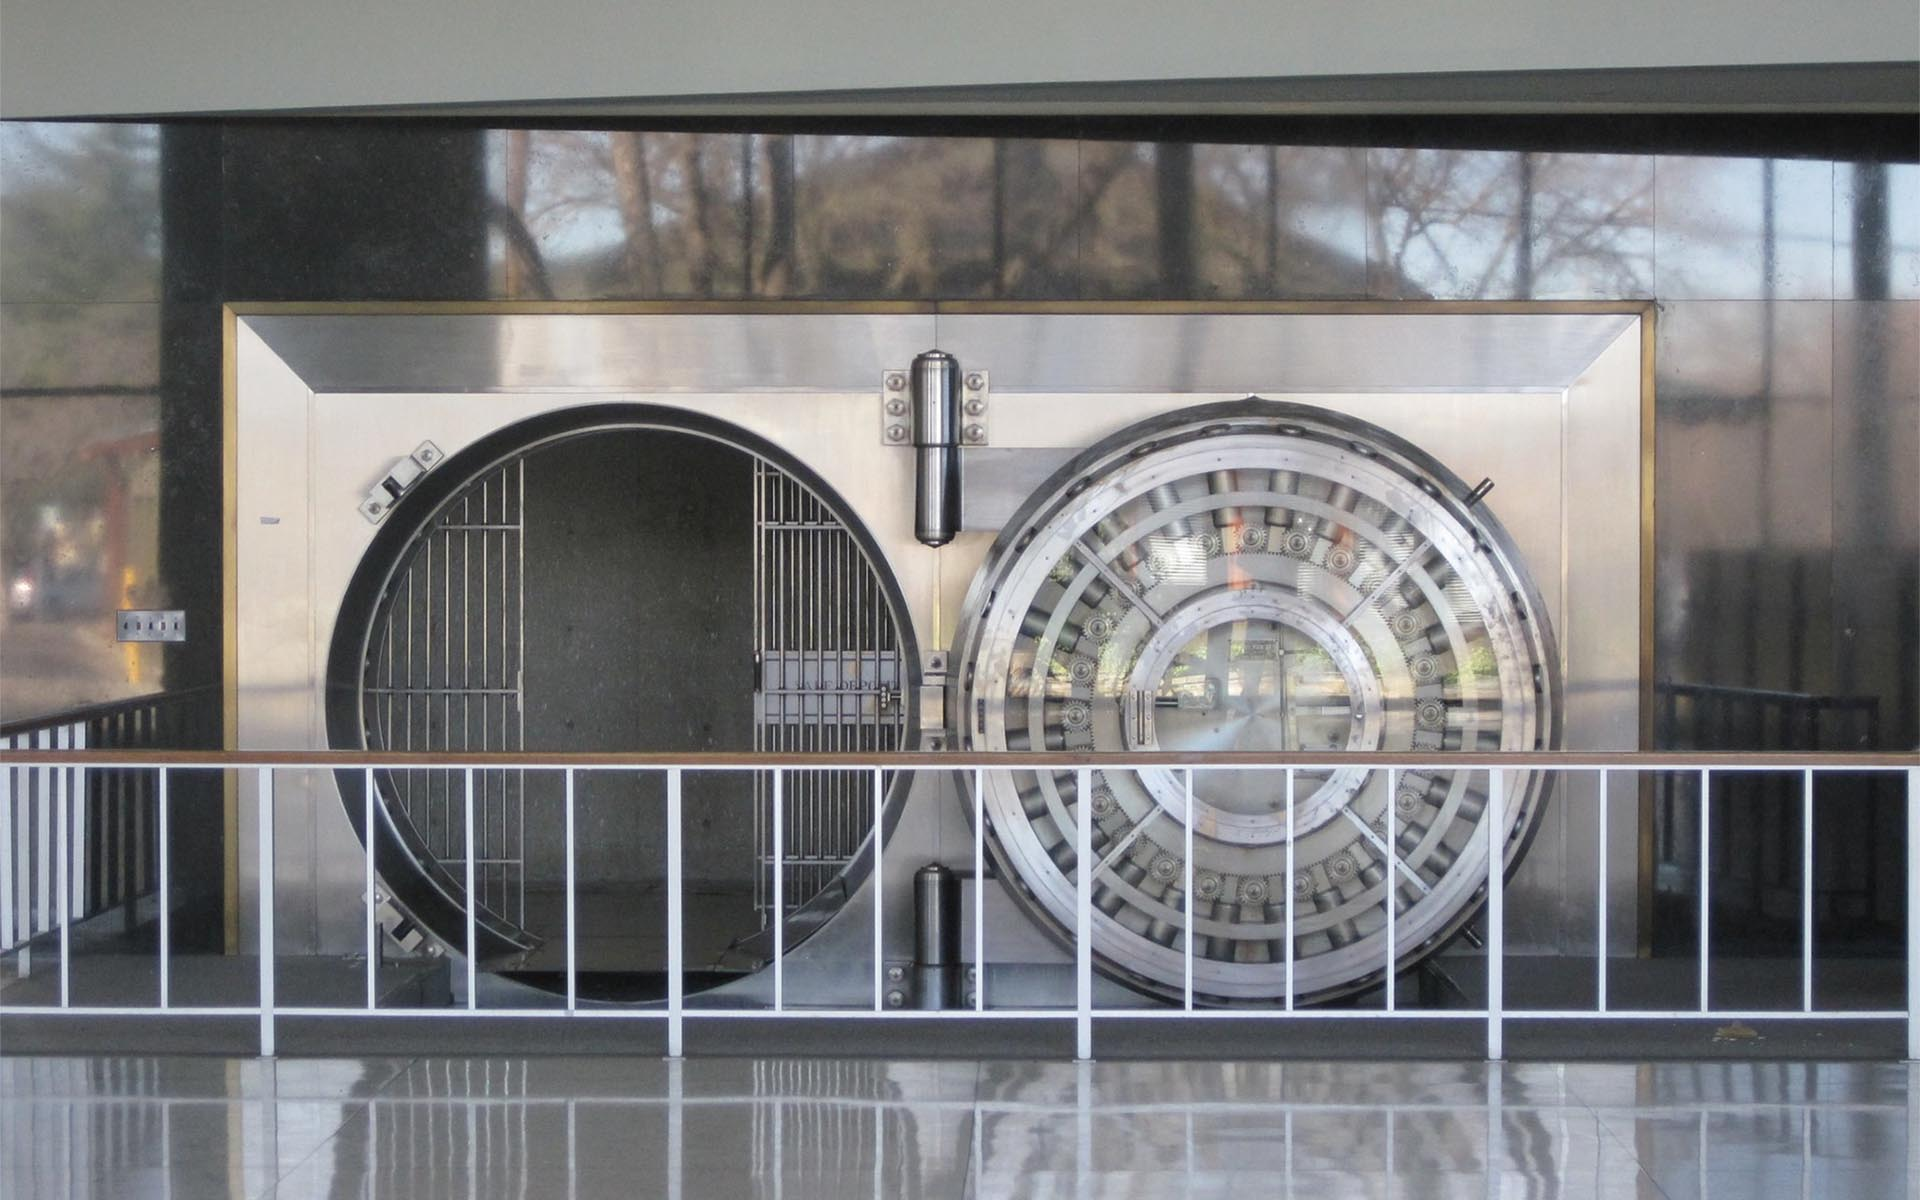 Keeping your cryptocurrencies safe